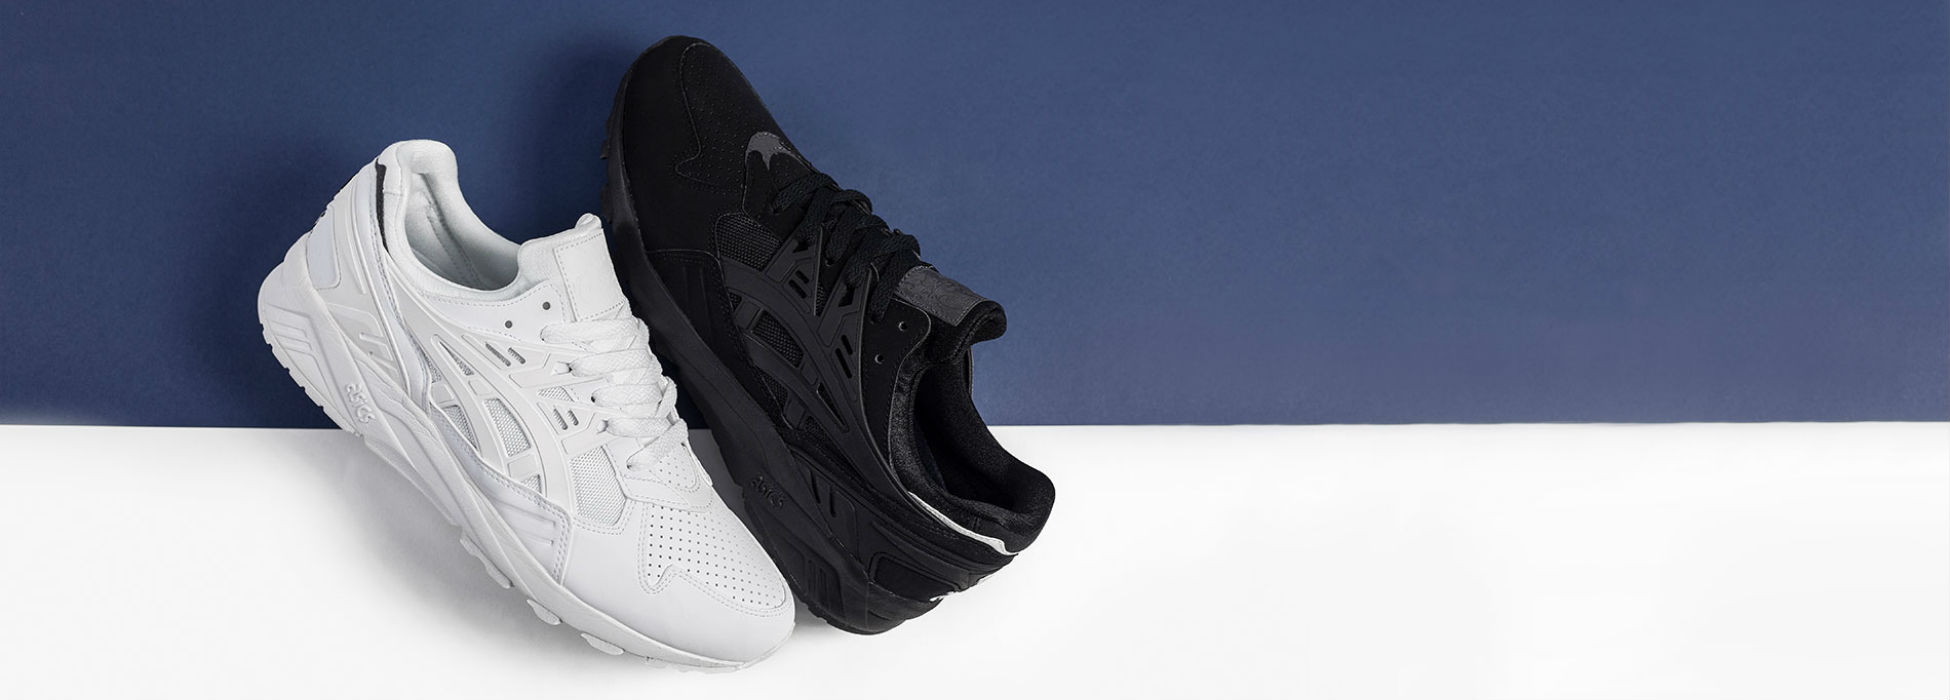 asics gel kayano black and white